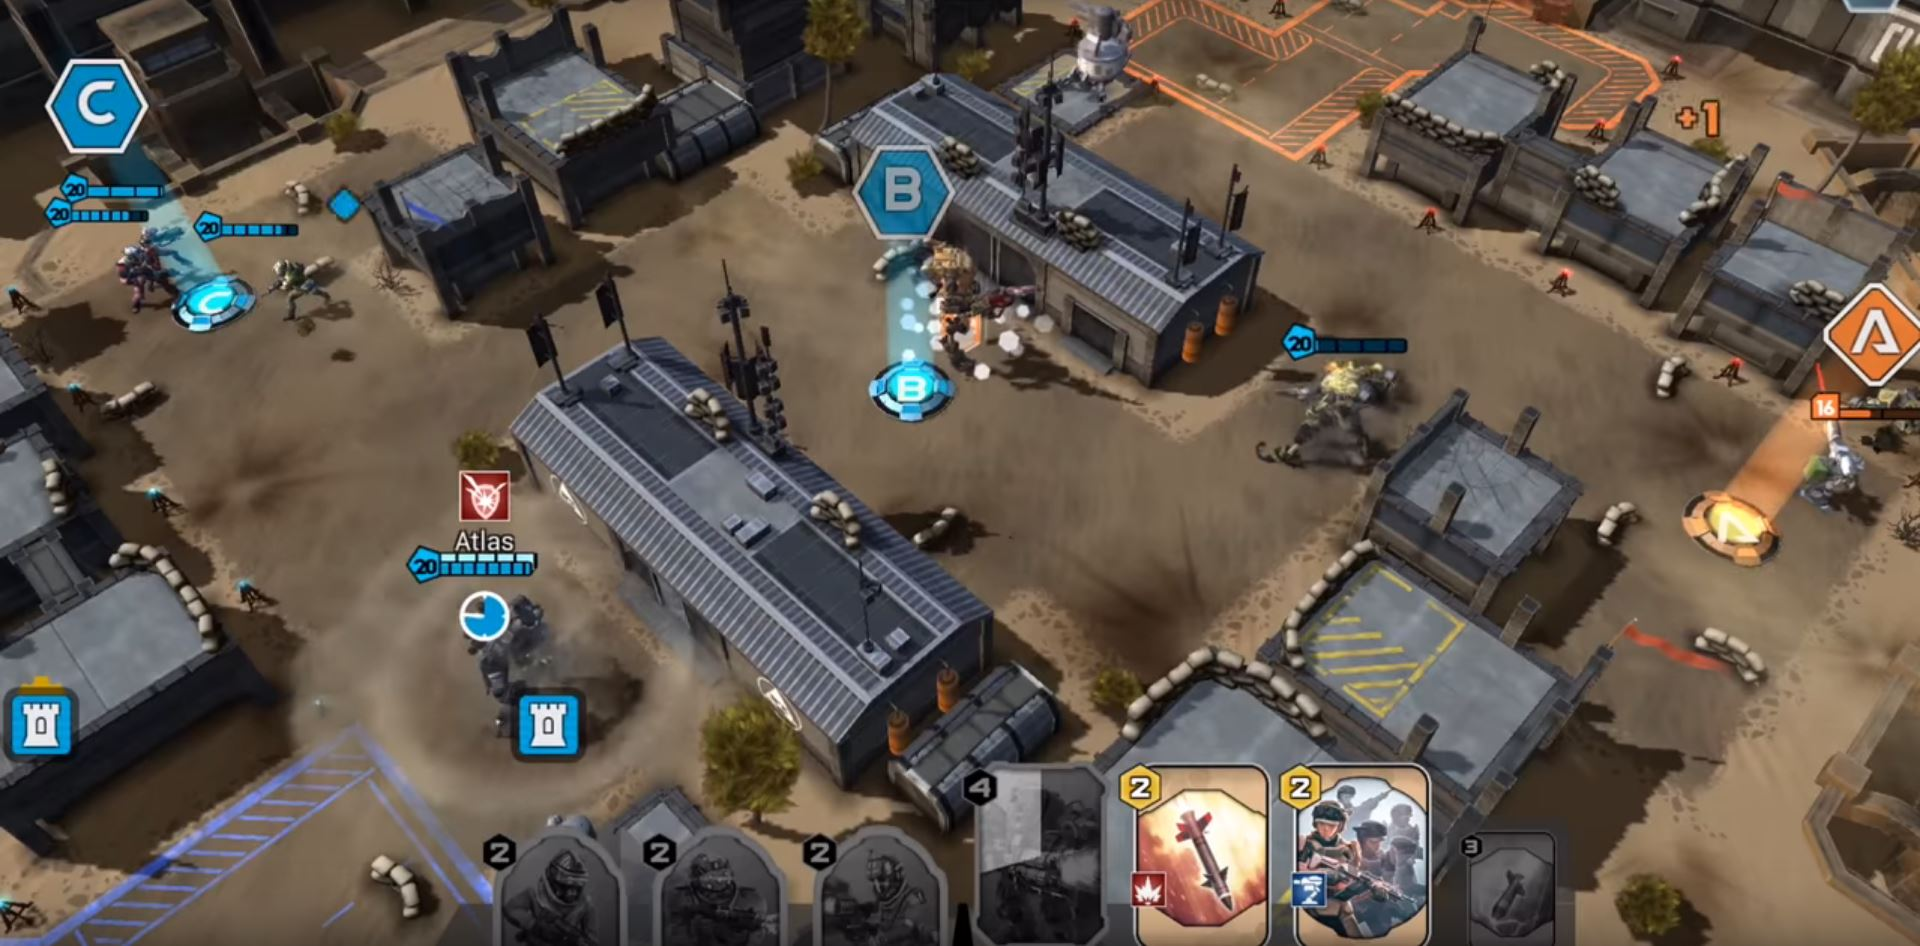 Titanfall: Assault Arrives on iOS and Android